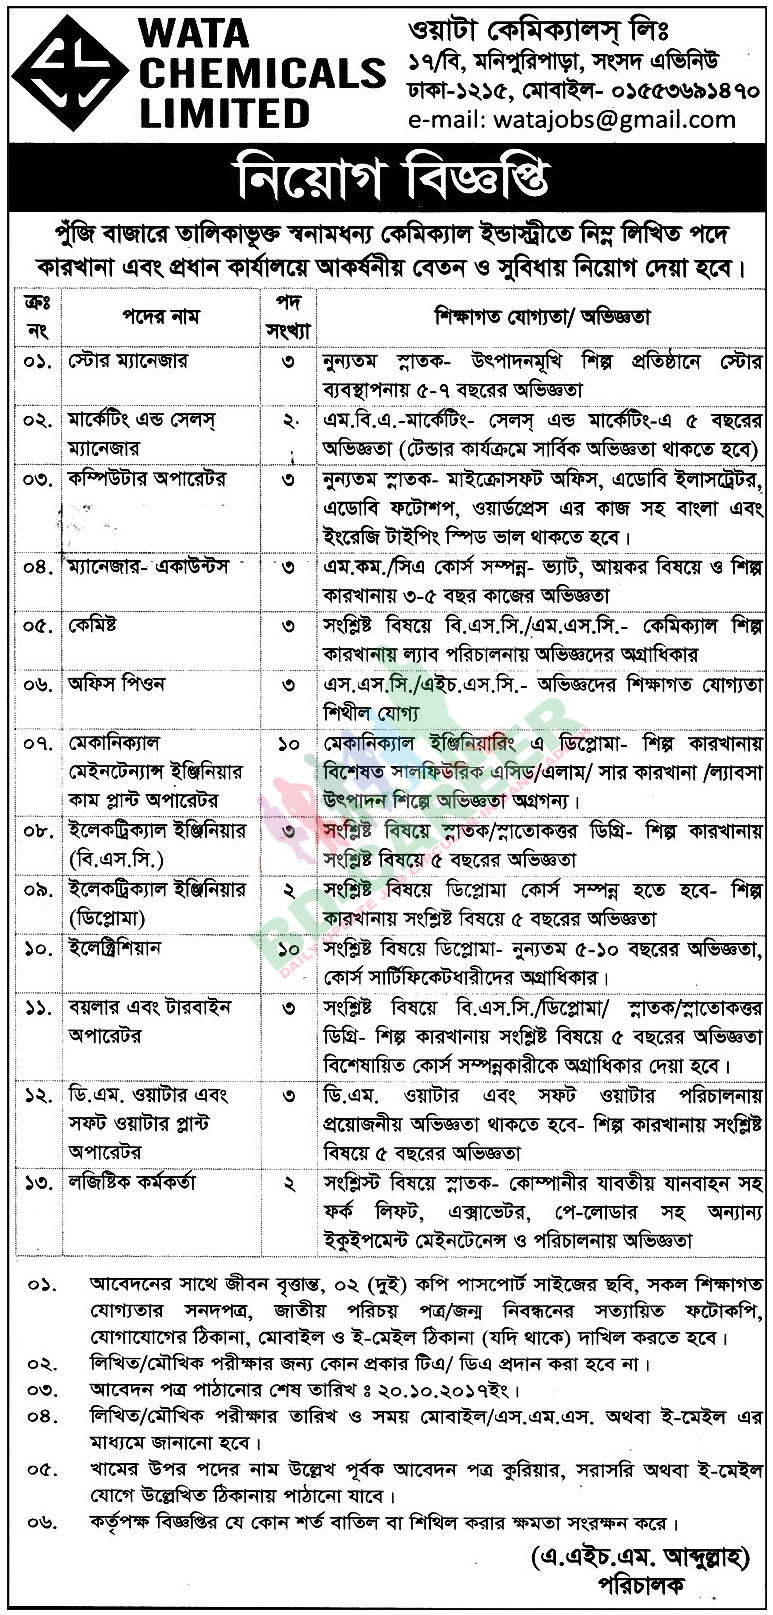 Wata Chemicals job circular